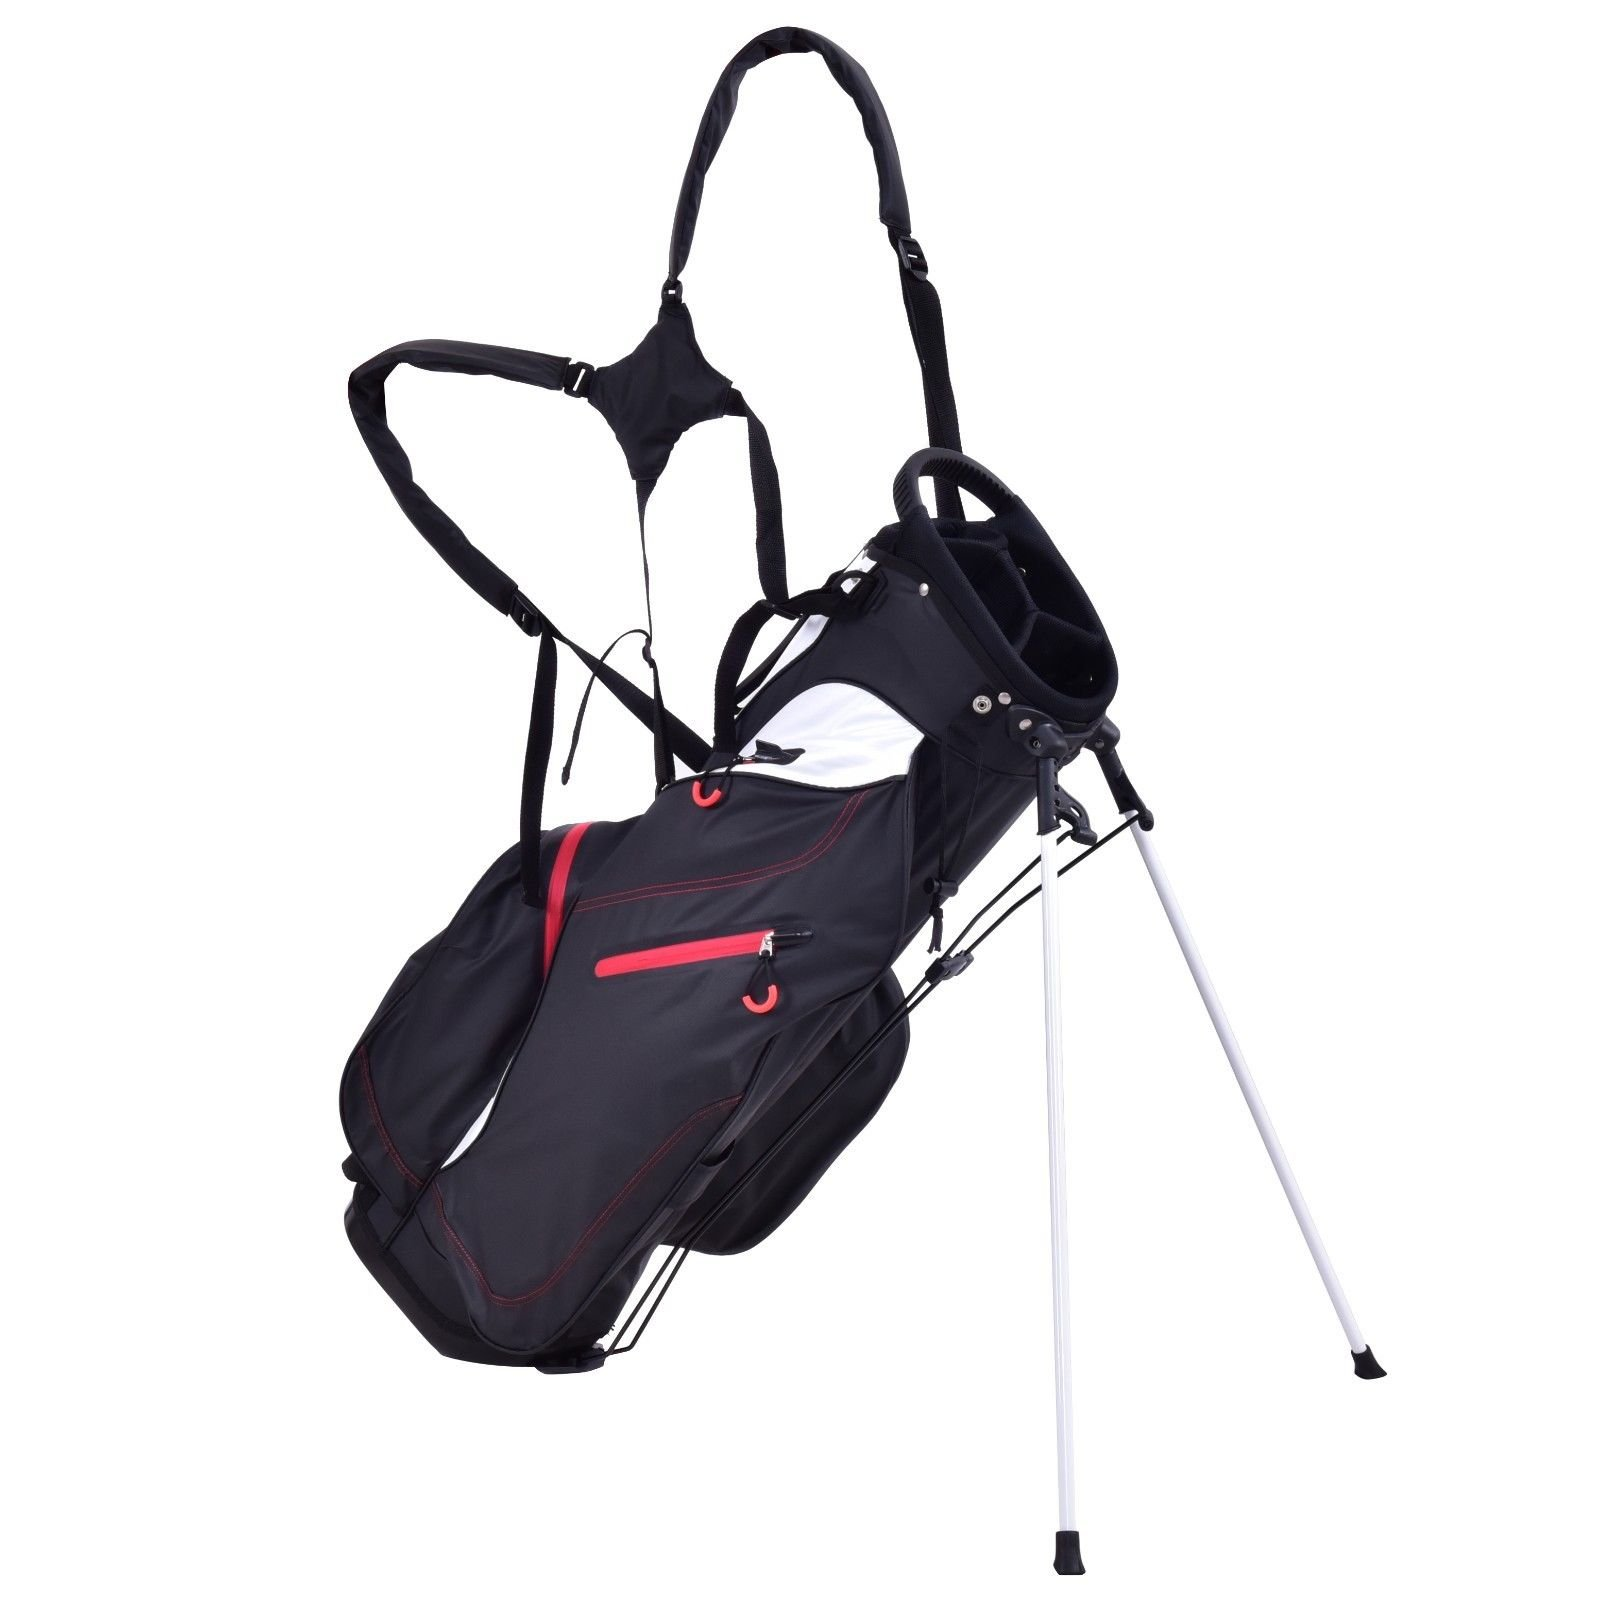 TANGKULA 8.5'' Golf Bag 5 Way Divider Carry Bag Golf Stand Cart Bag